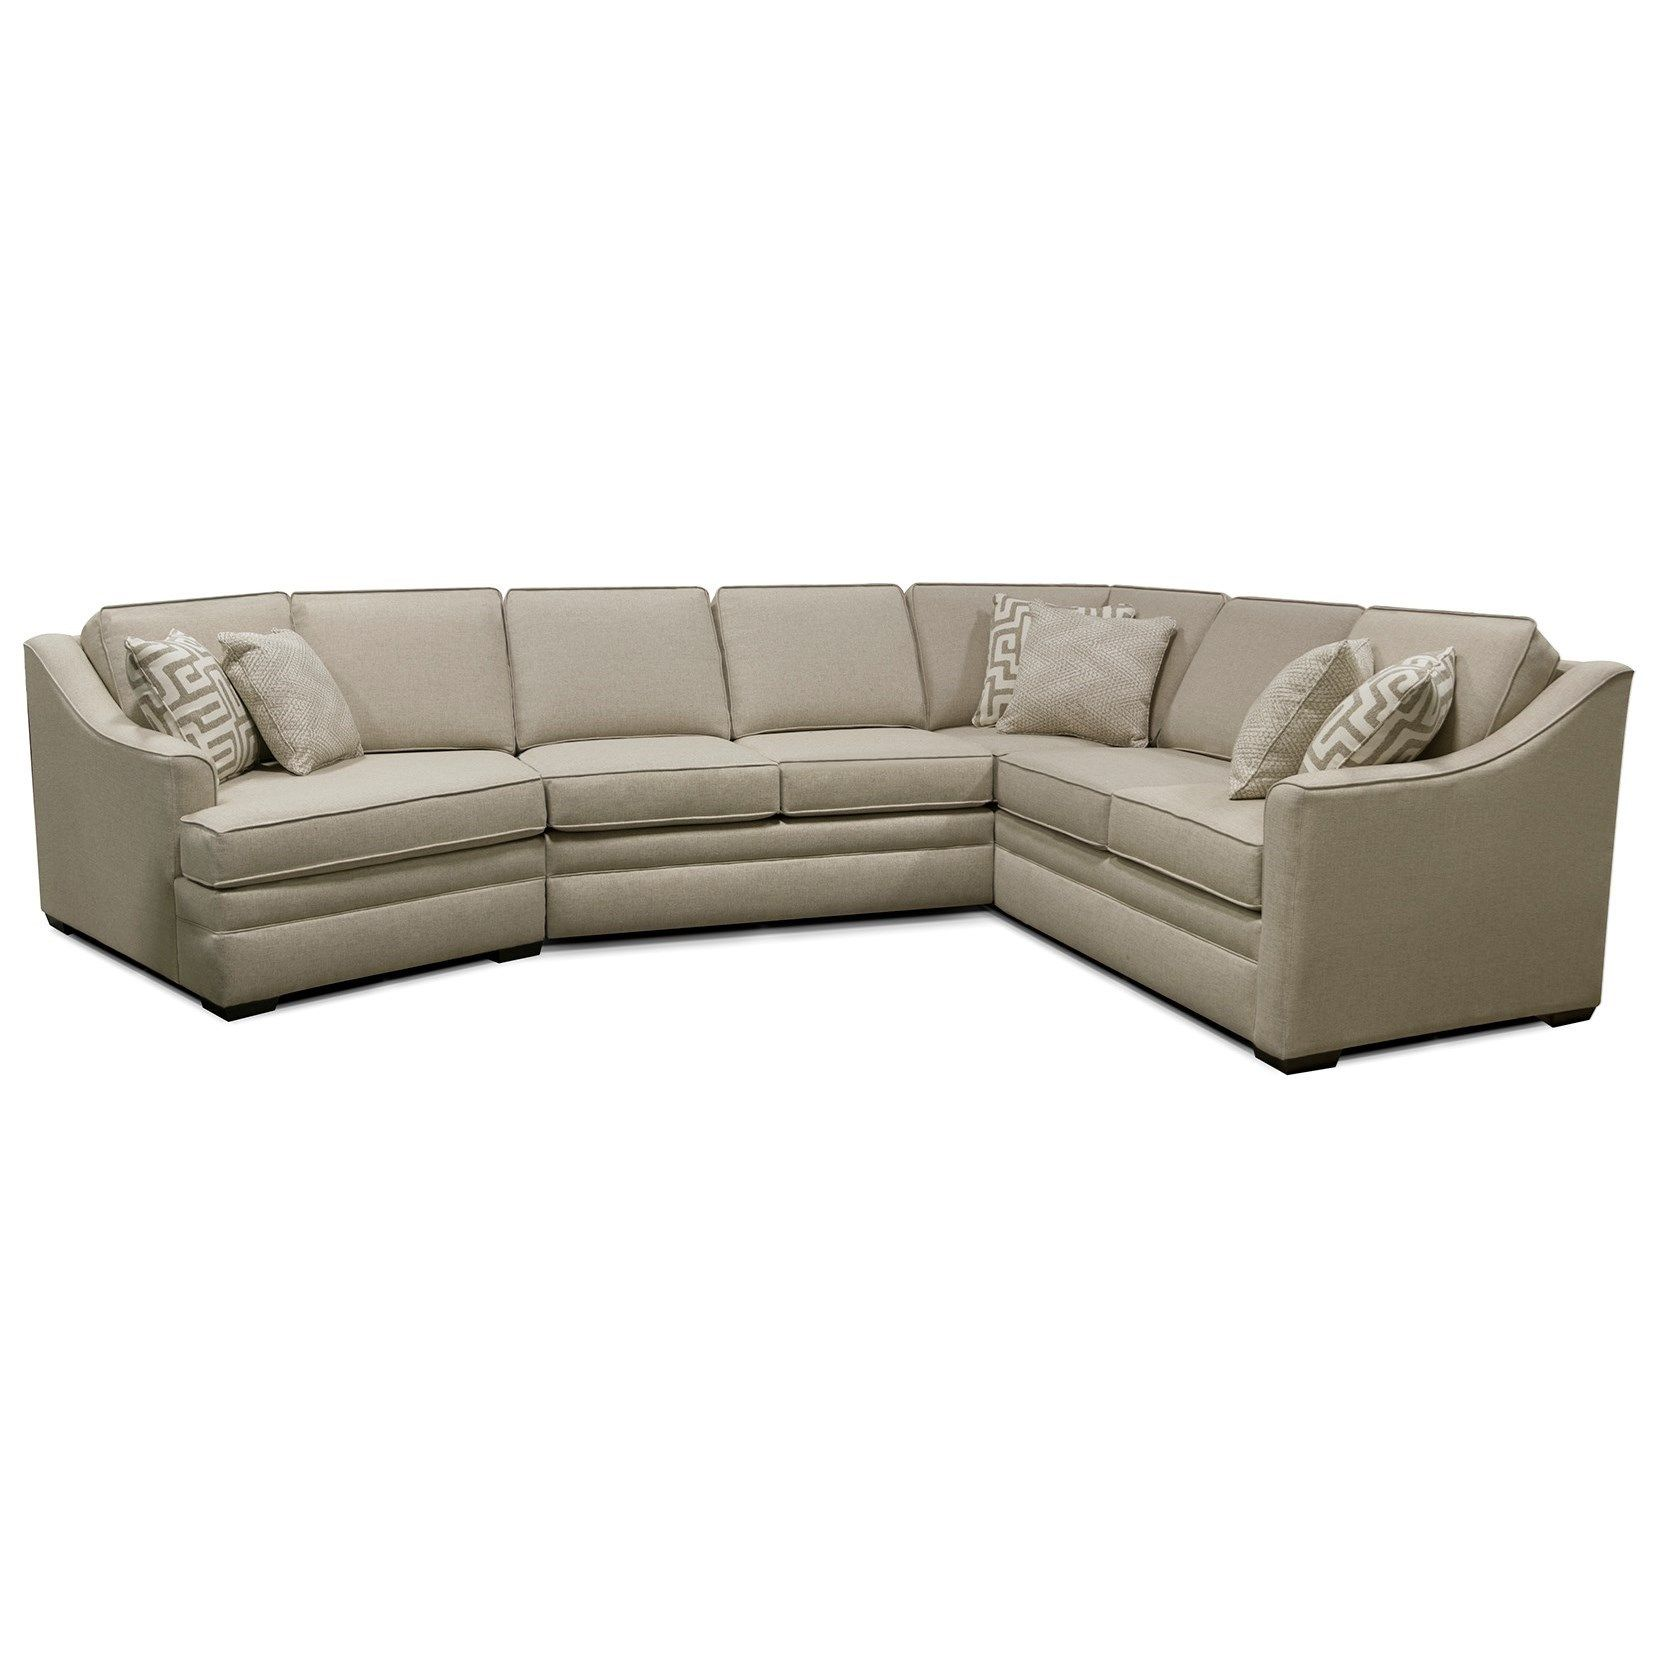 thomas sectional sofa with five seats by england home decor